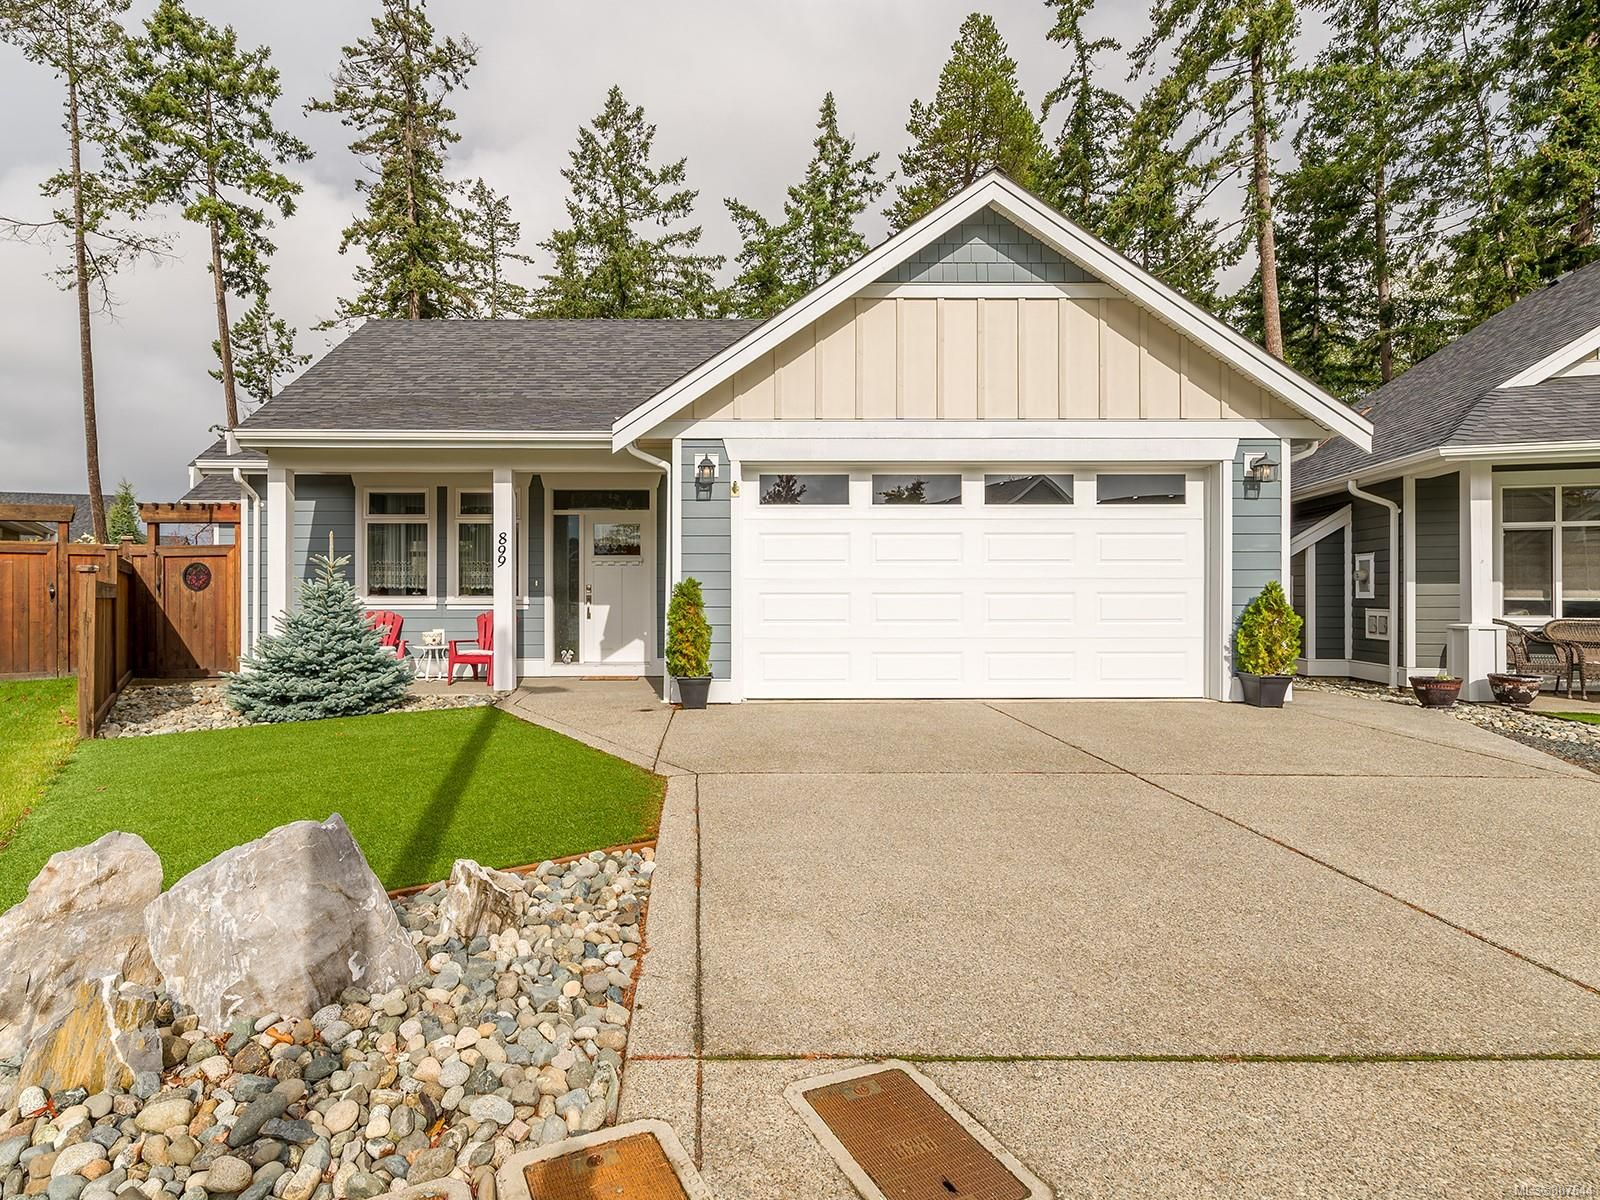 Main Photo: 899 Parkside Cres in : PQ Parksville House for sale (Parksville/Qualicum)  : MLS®# 887644